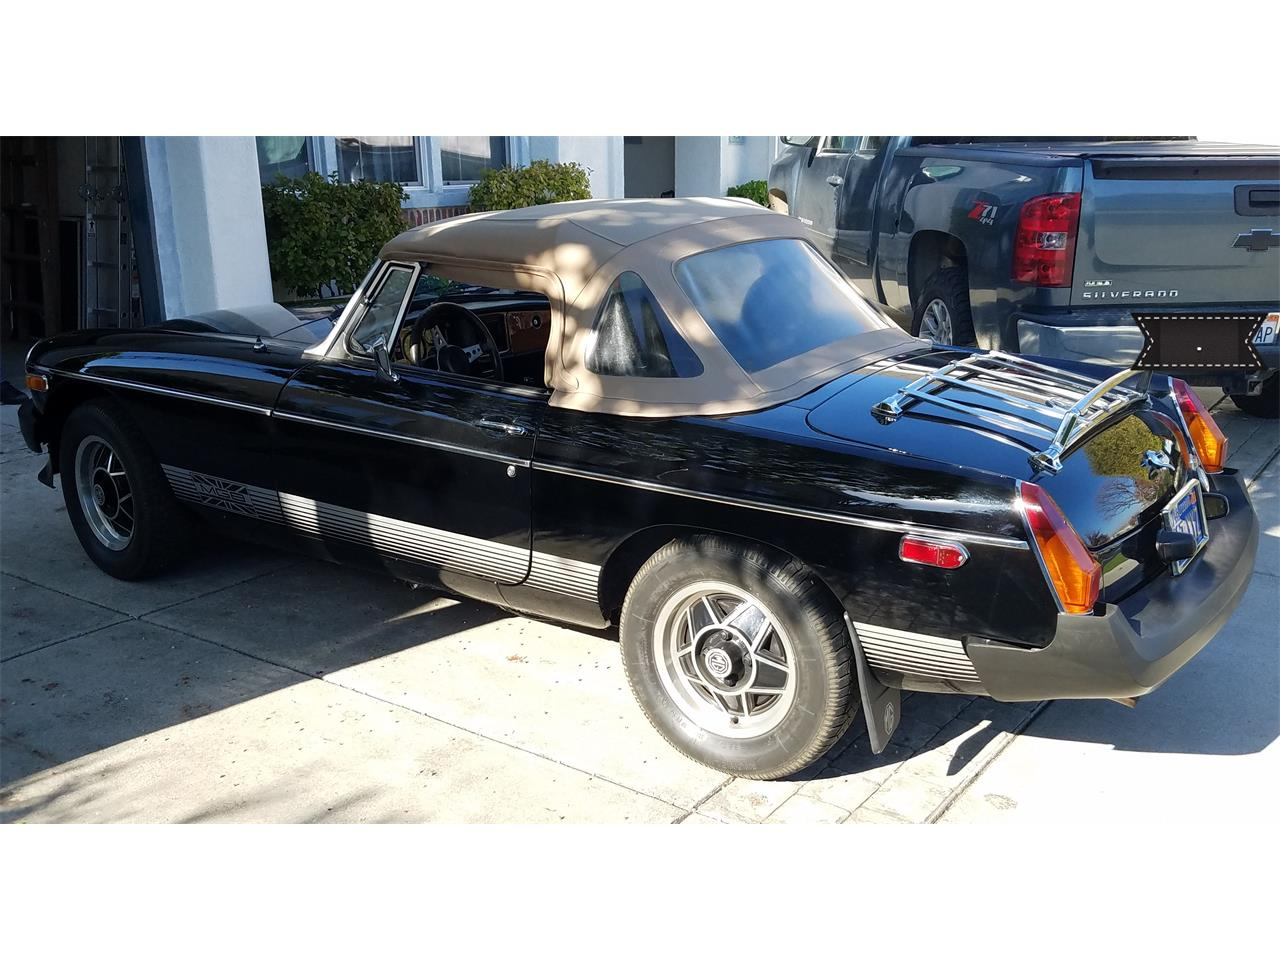 Large Picture of '79 MG MGB located in California - $9,000.00 Offered by a Private Seller - COAZ